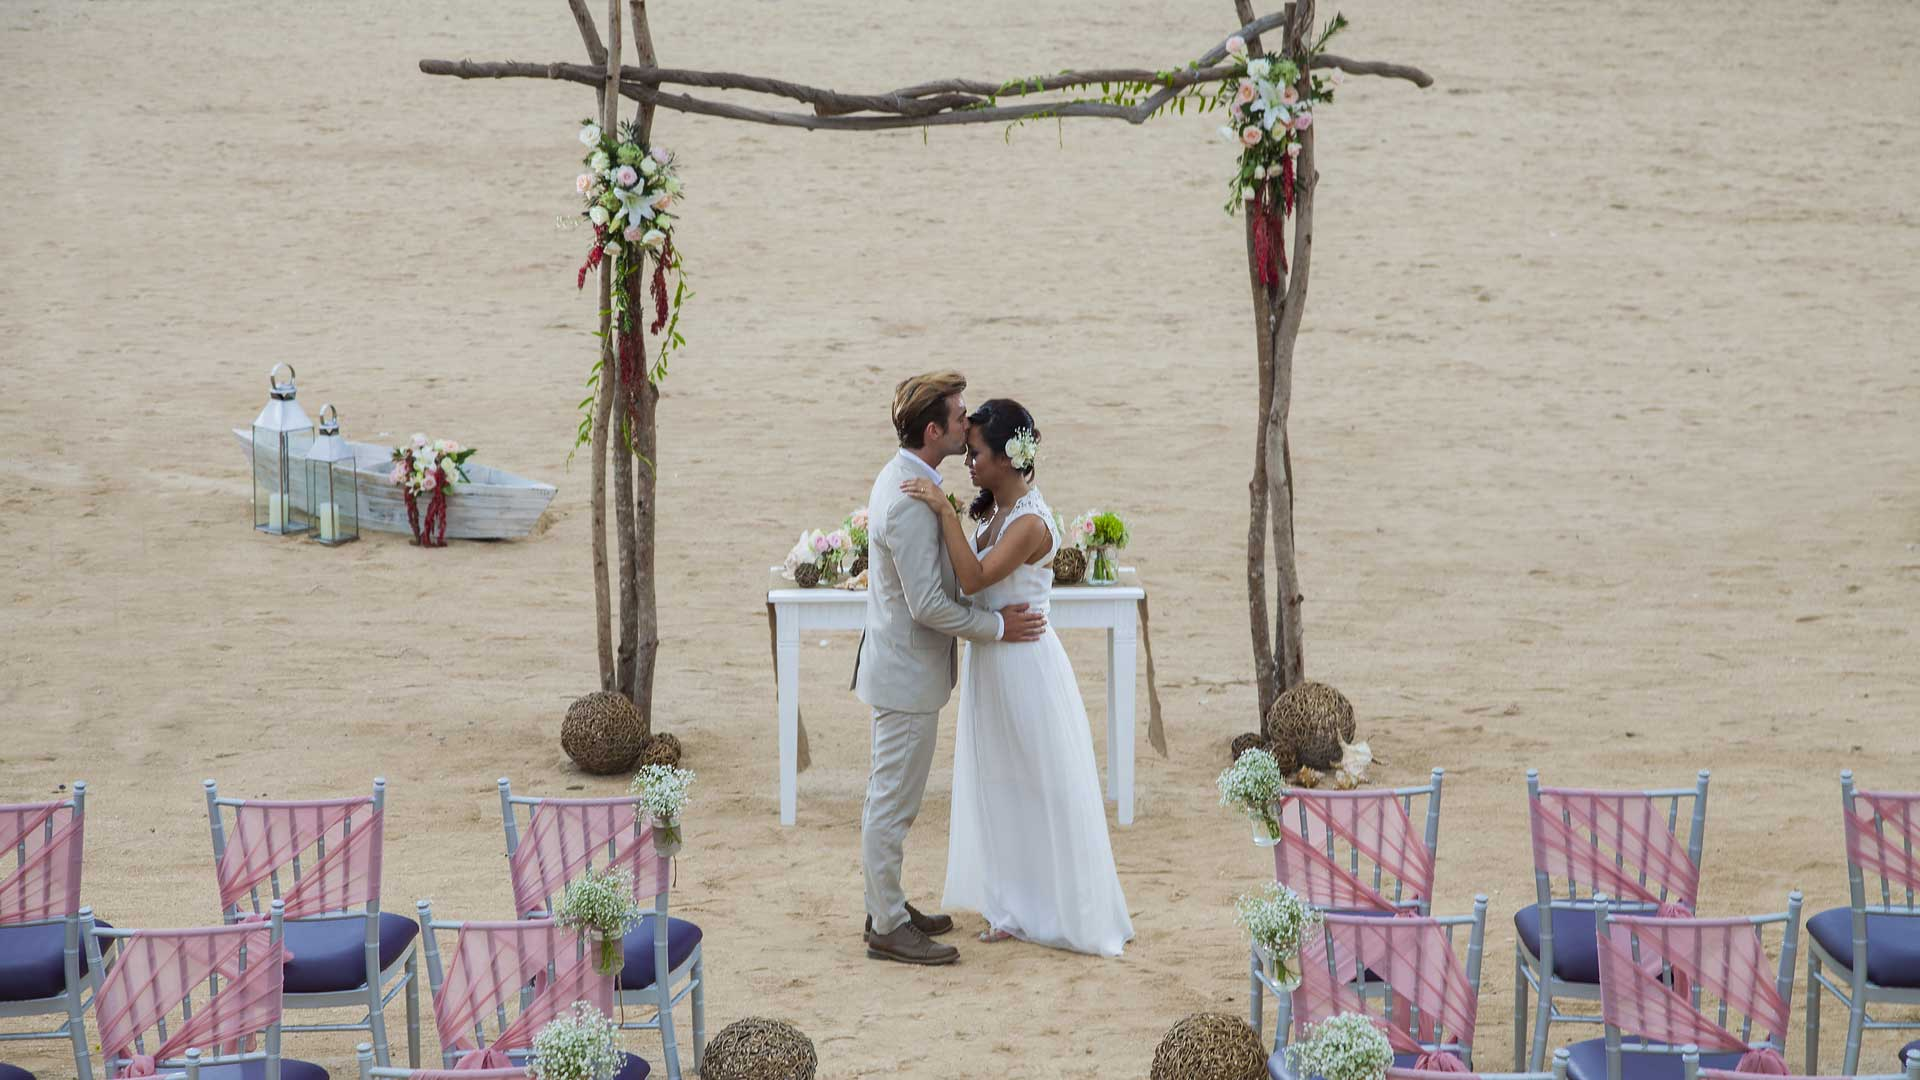 Bali Beachfront Wedding | The Sakala Resort Bali